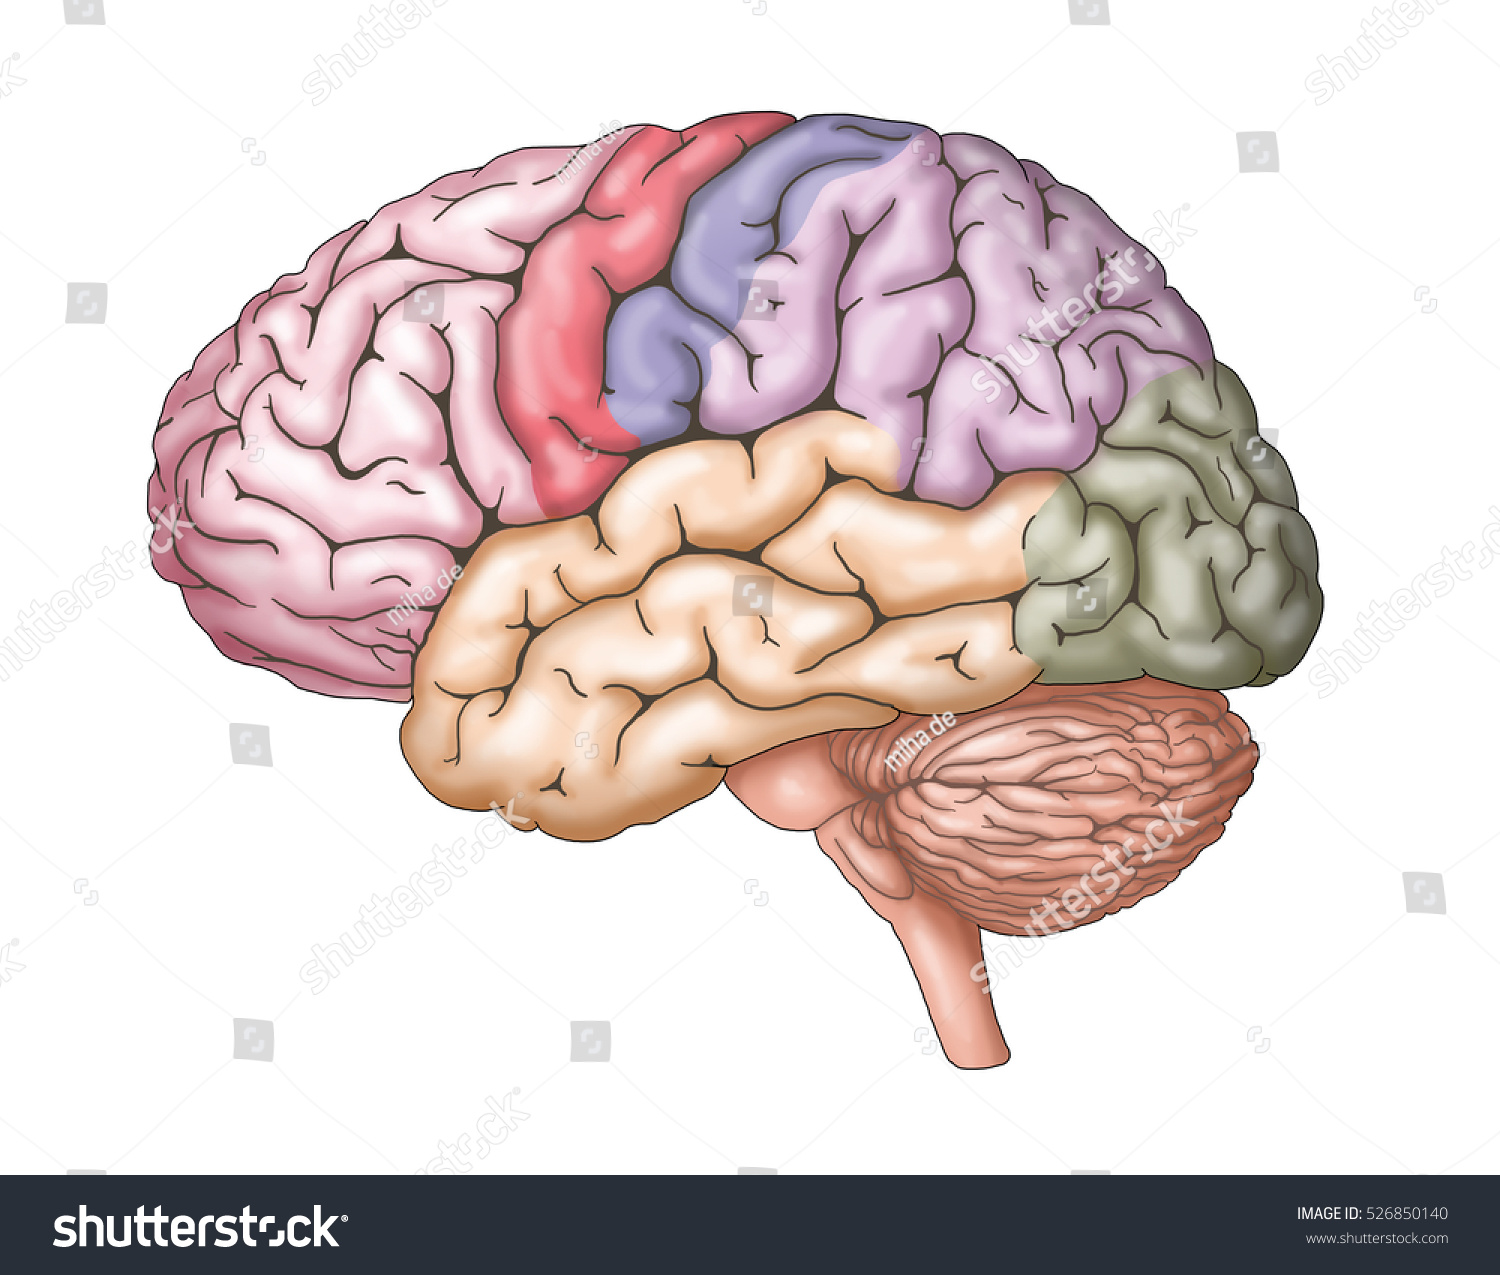 Human Brain Anatomy Structure Illustration Stock Illustration ...